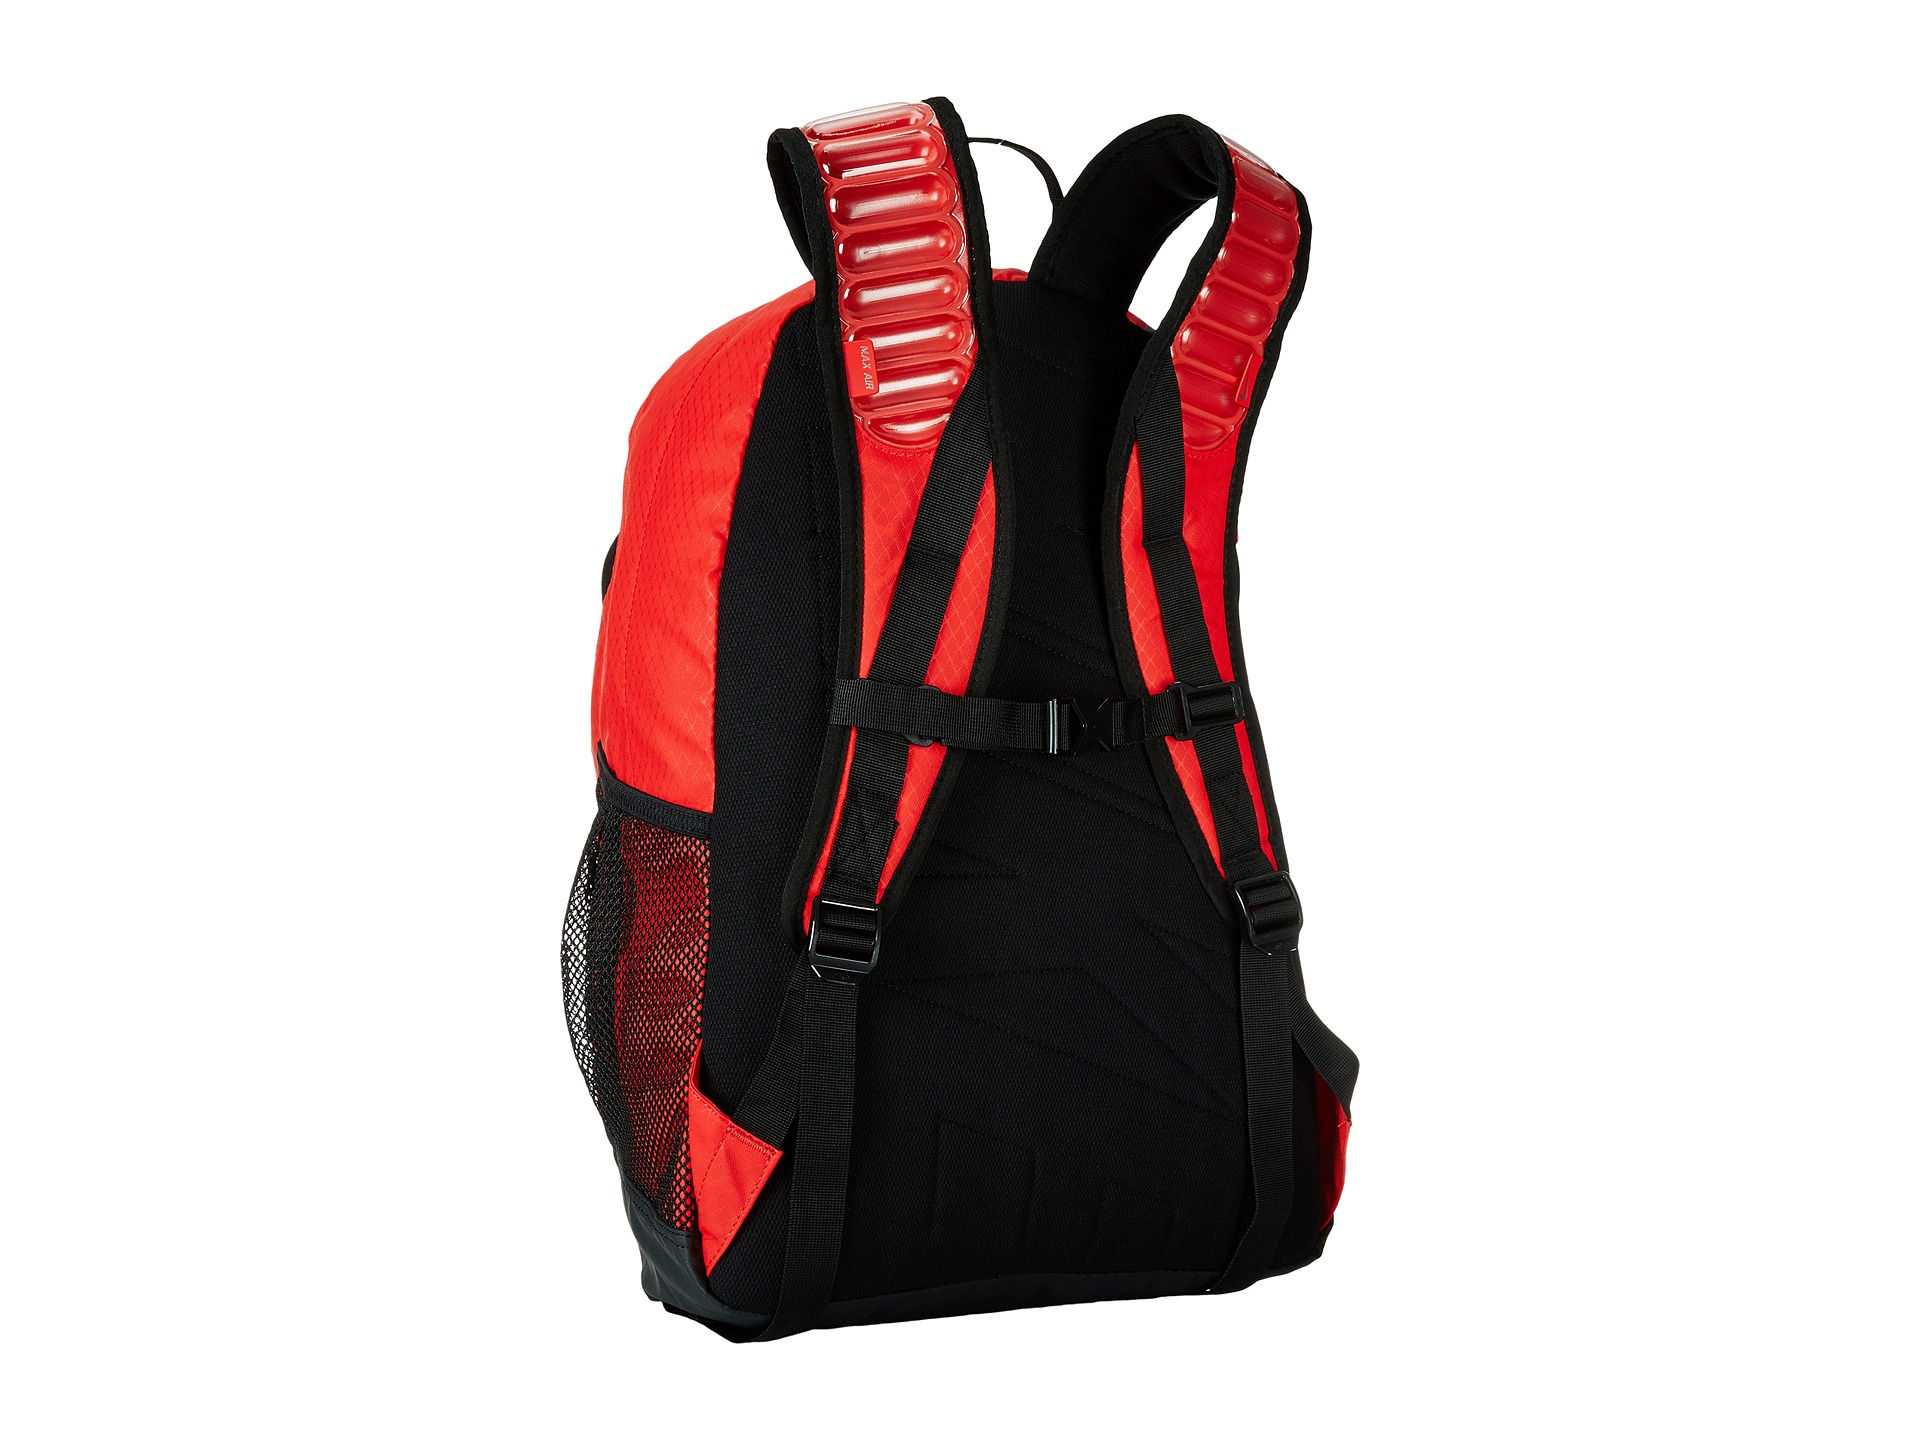 Nike Max Air Vapor Backpack Red - CEAGESP c5161504efca